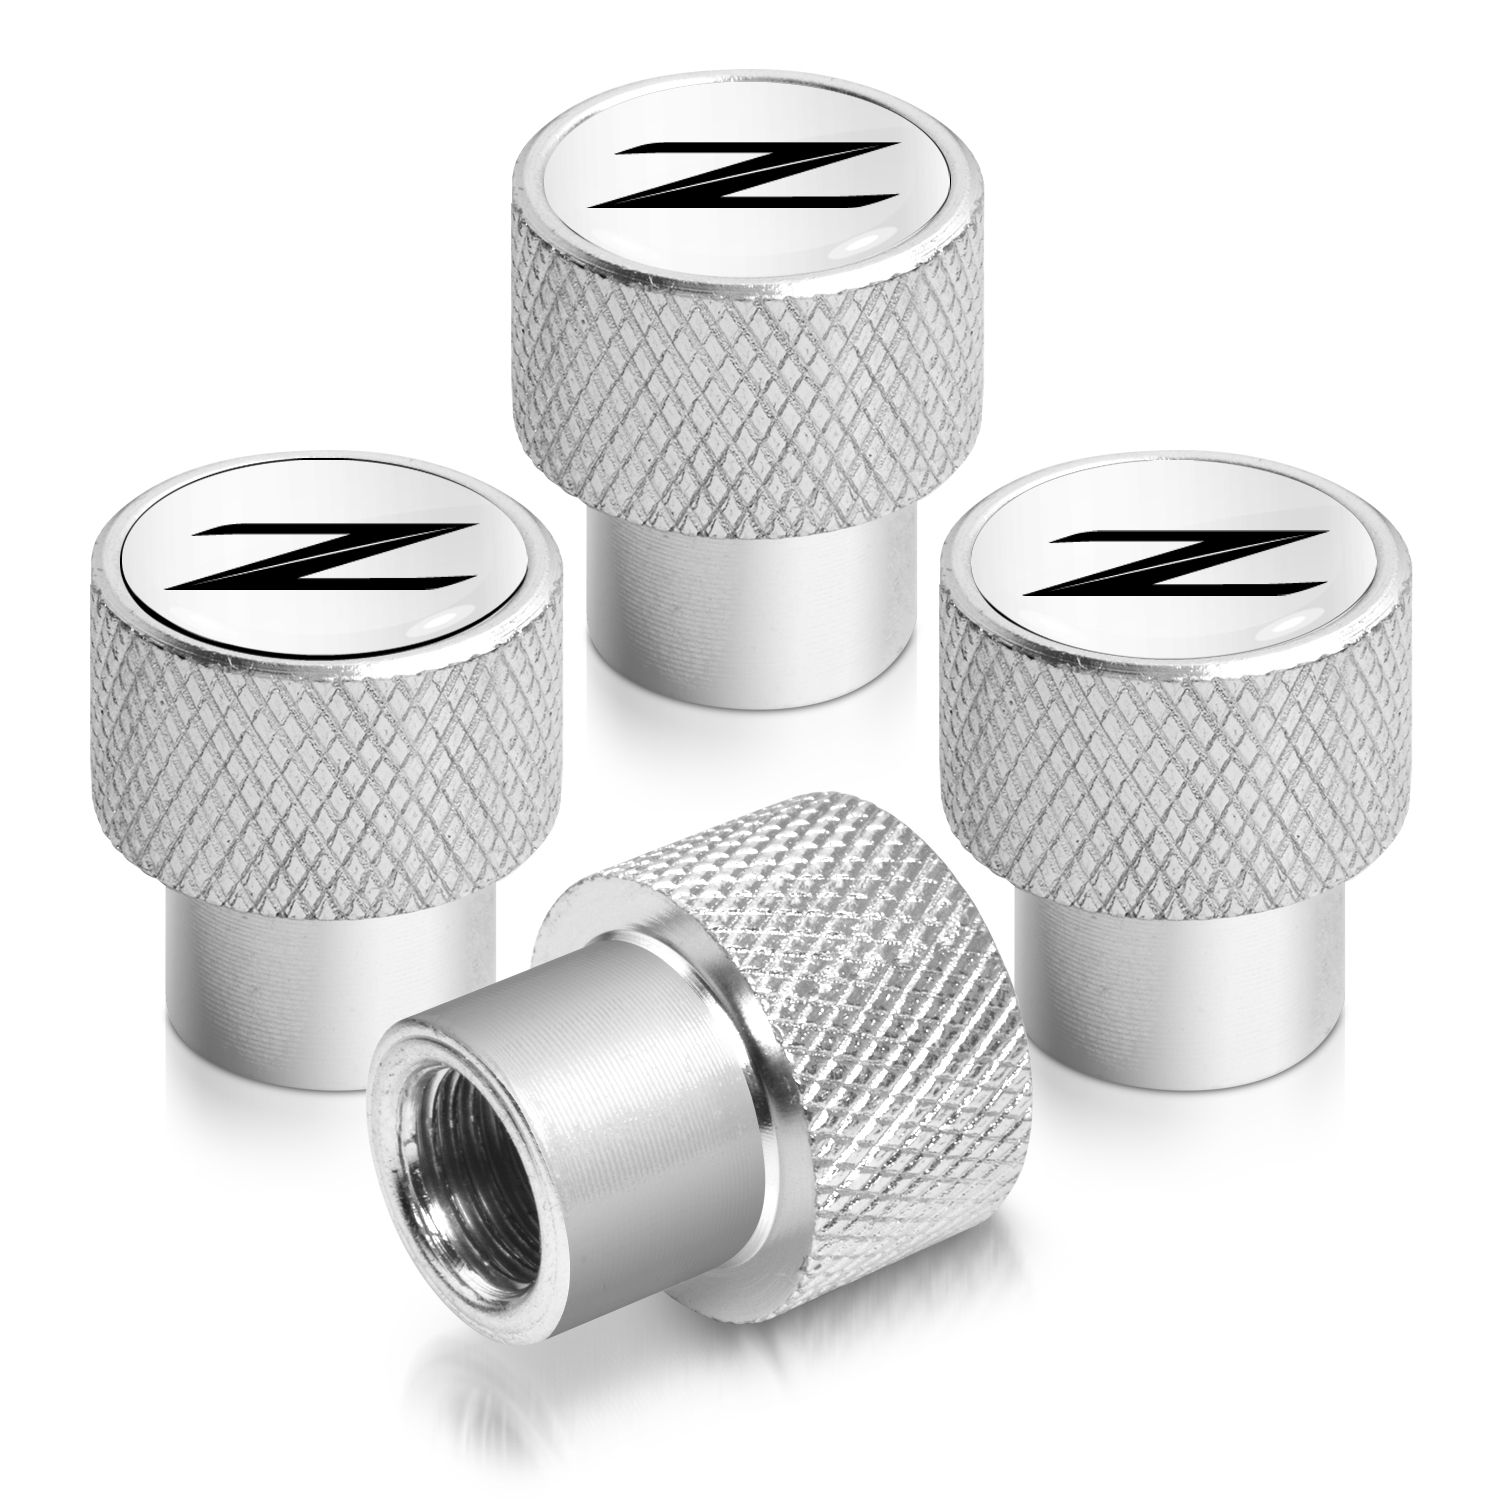 Nissan 370Z Z logo in White on Shining Silver Aluminum Tire Valve Stem Caps